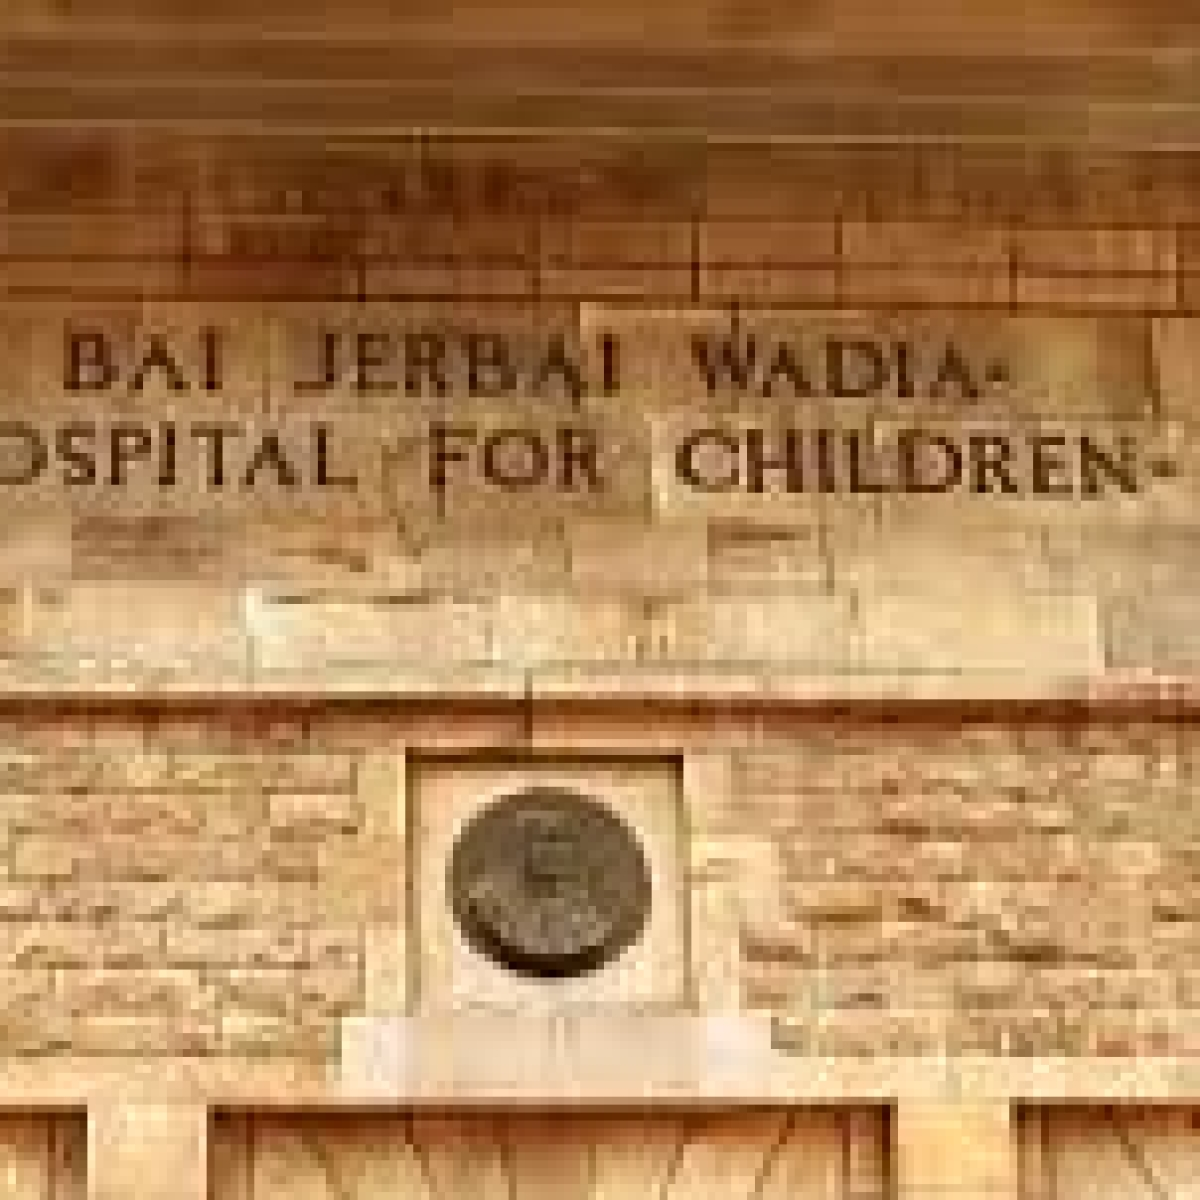 City's only kids' hospital ailing due to cash crunch, may shut down